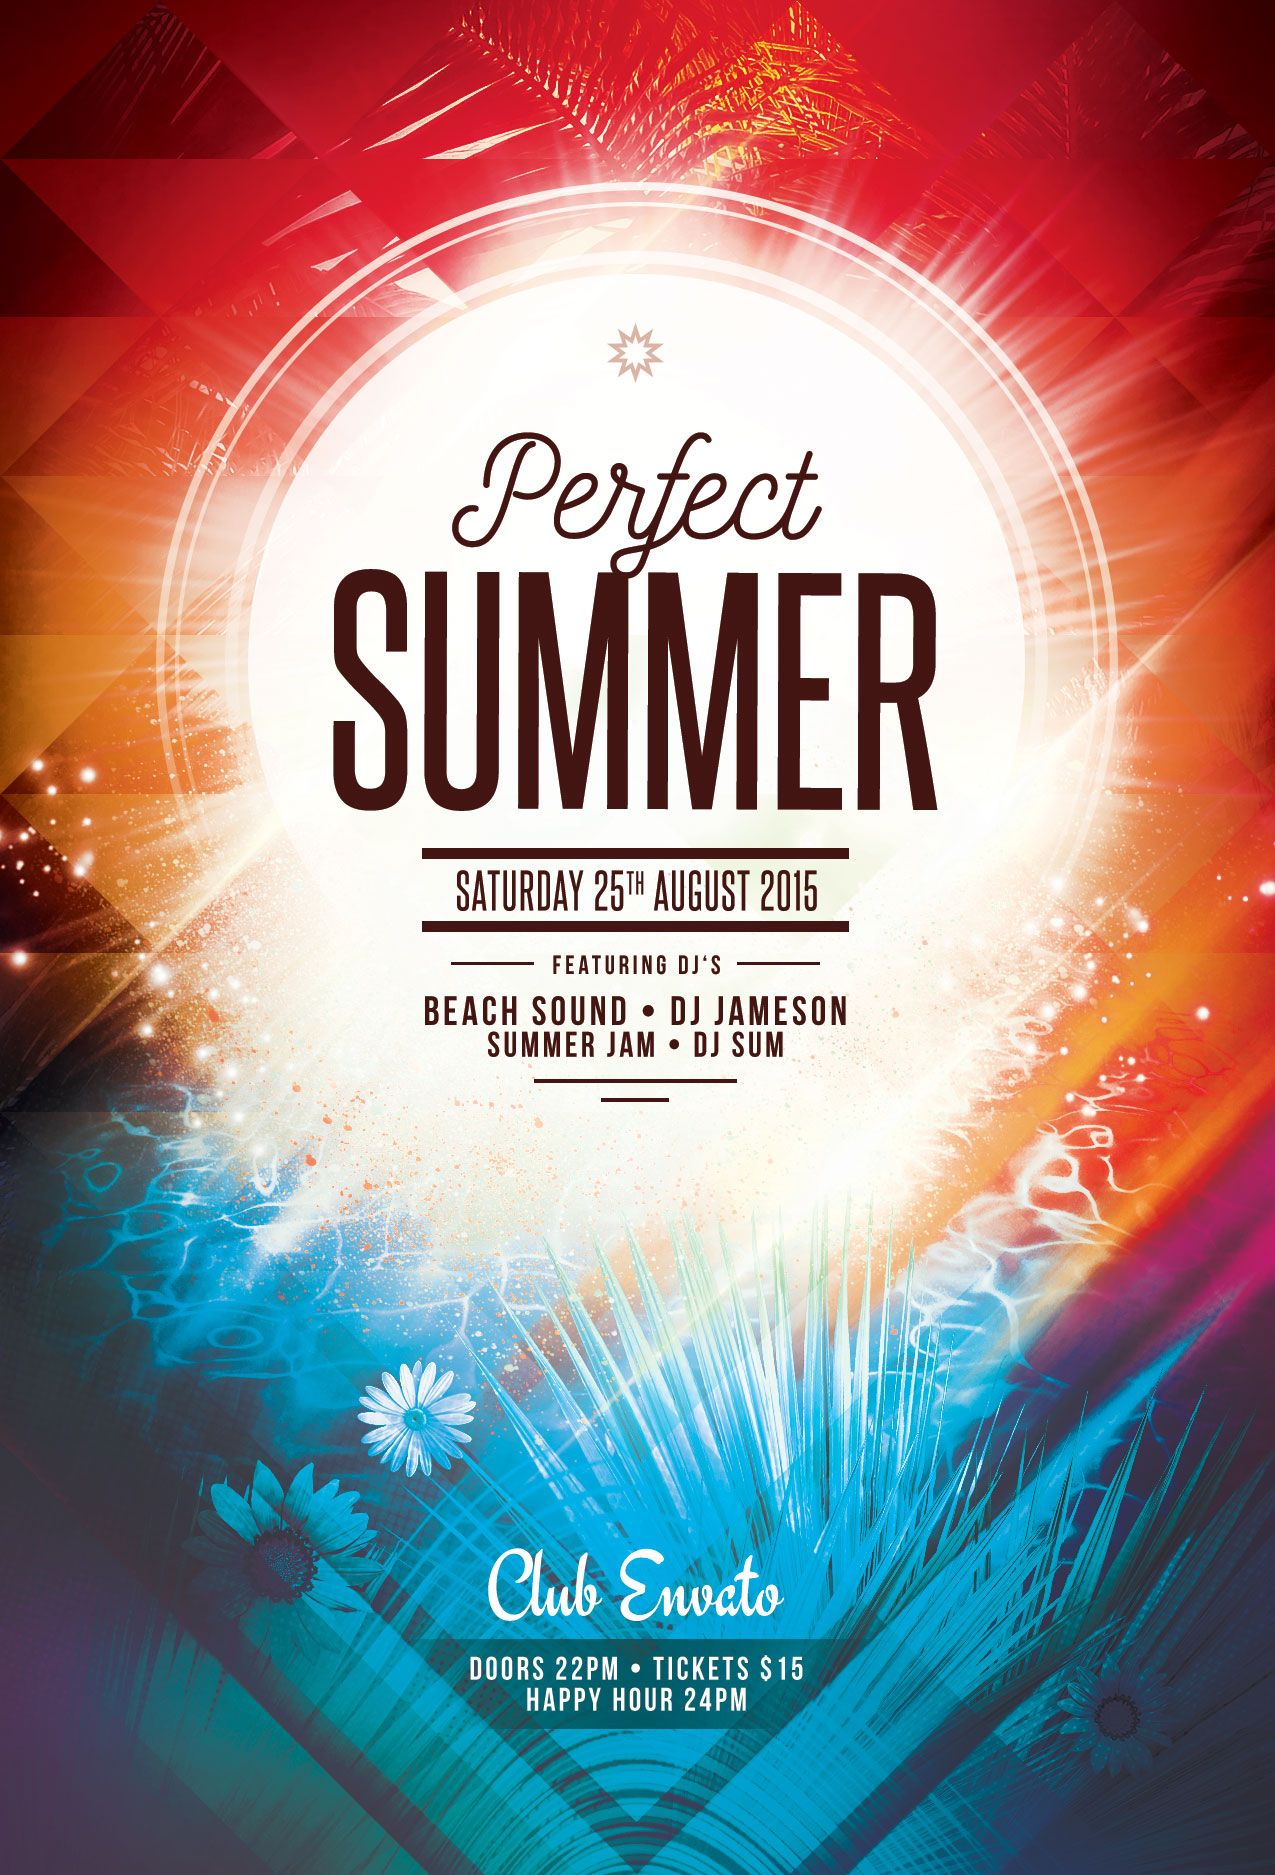 Perfect Summer Flyer Template. Download PSD File   $6